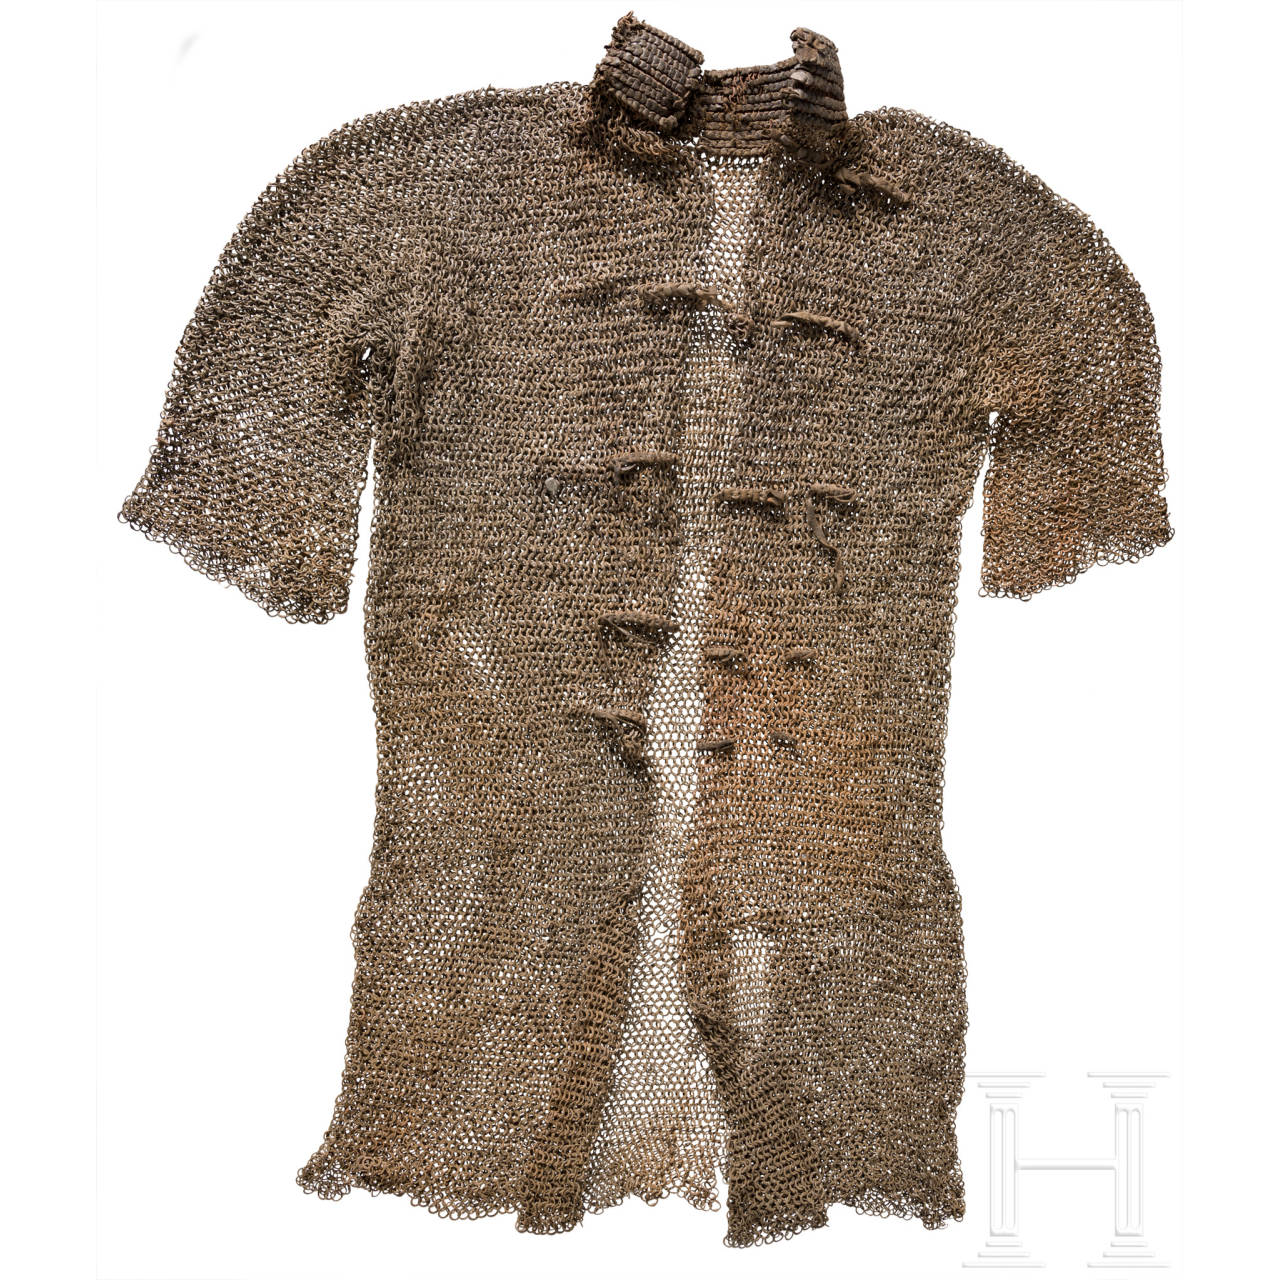 An Ottoman mail shirt, dated 1599